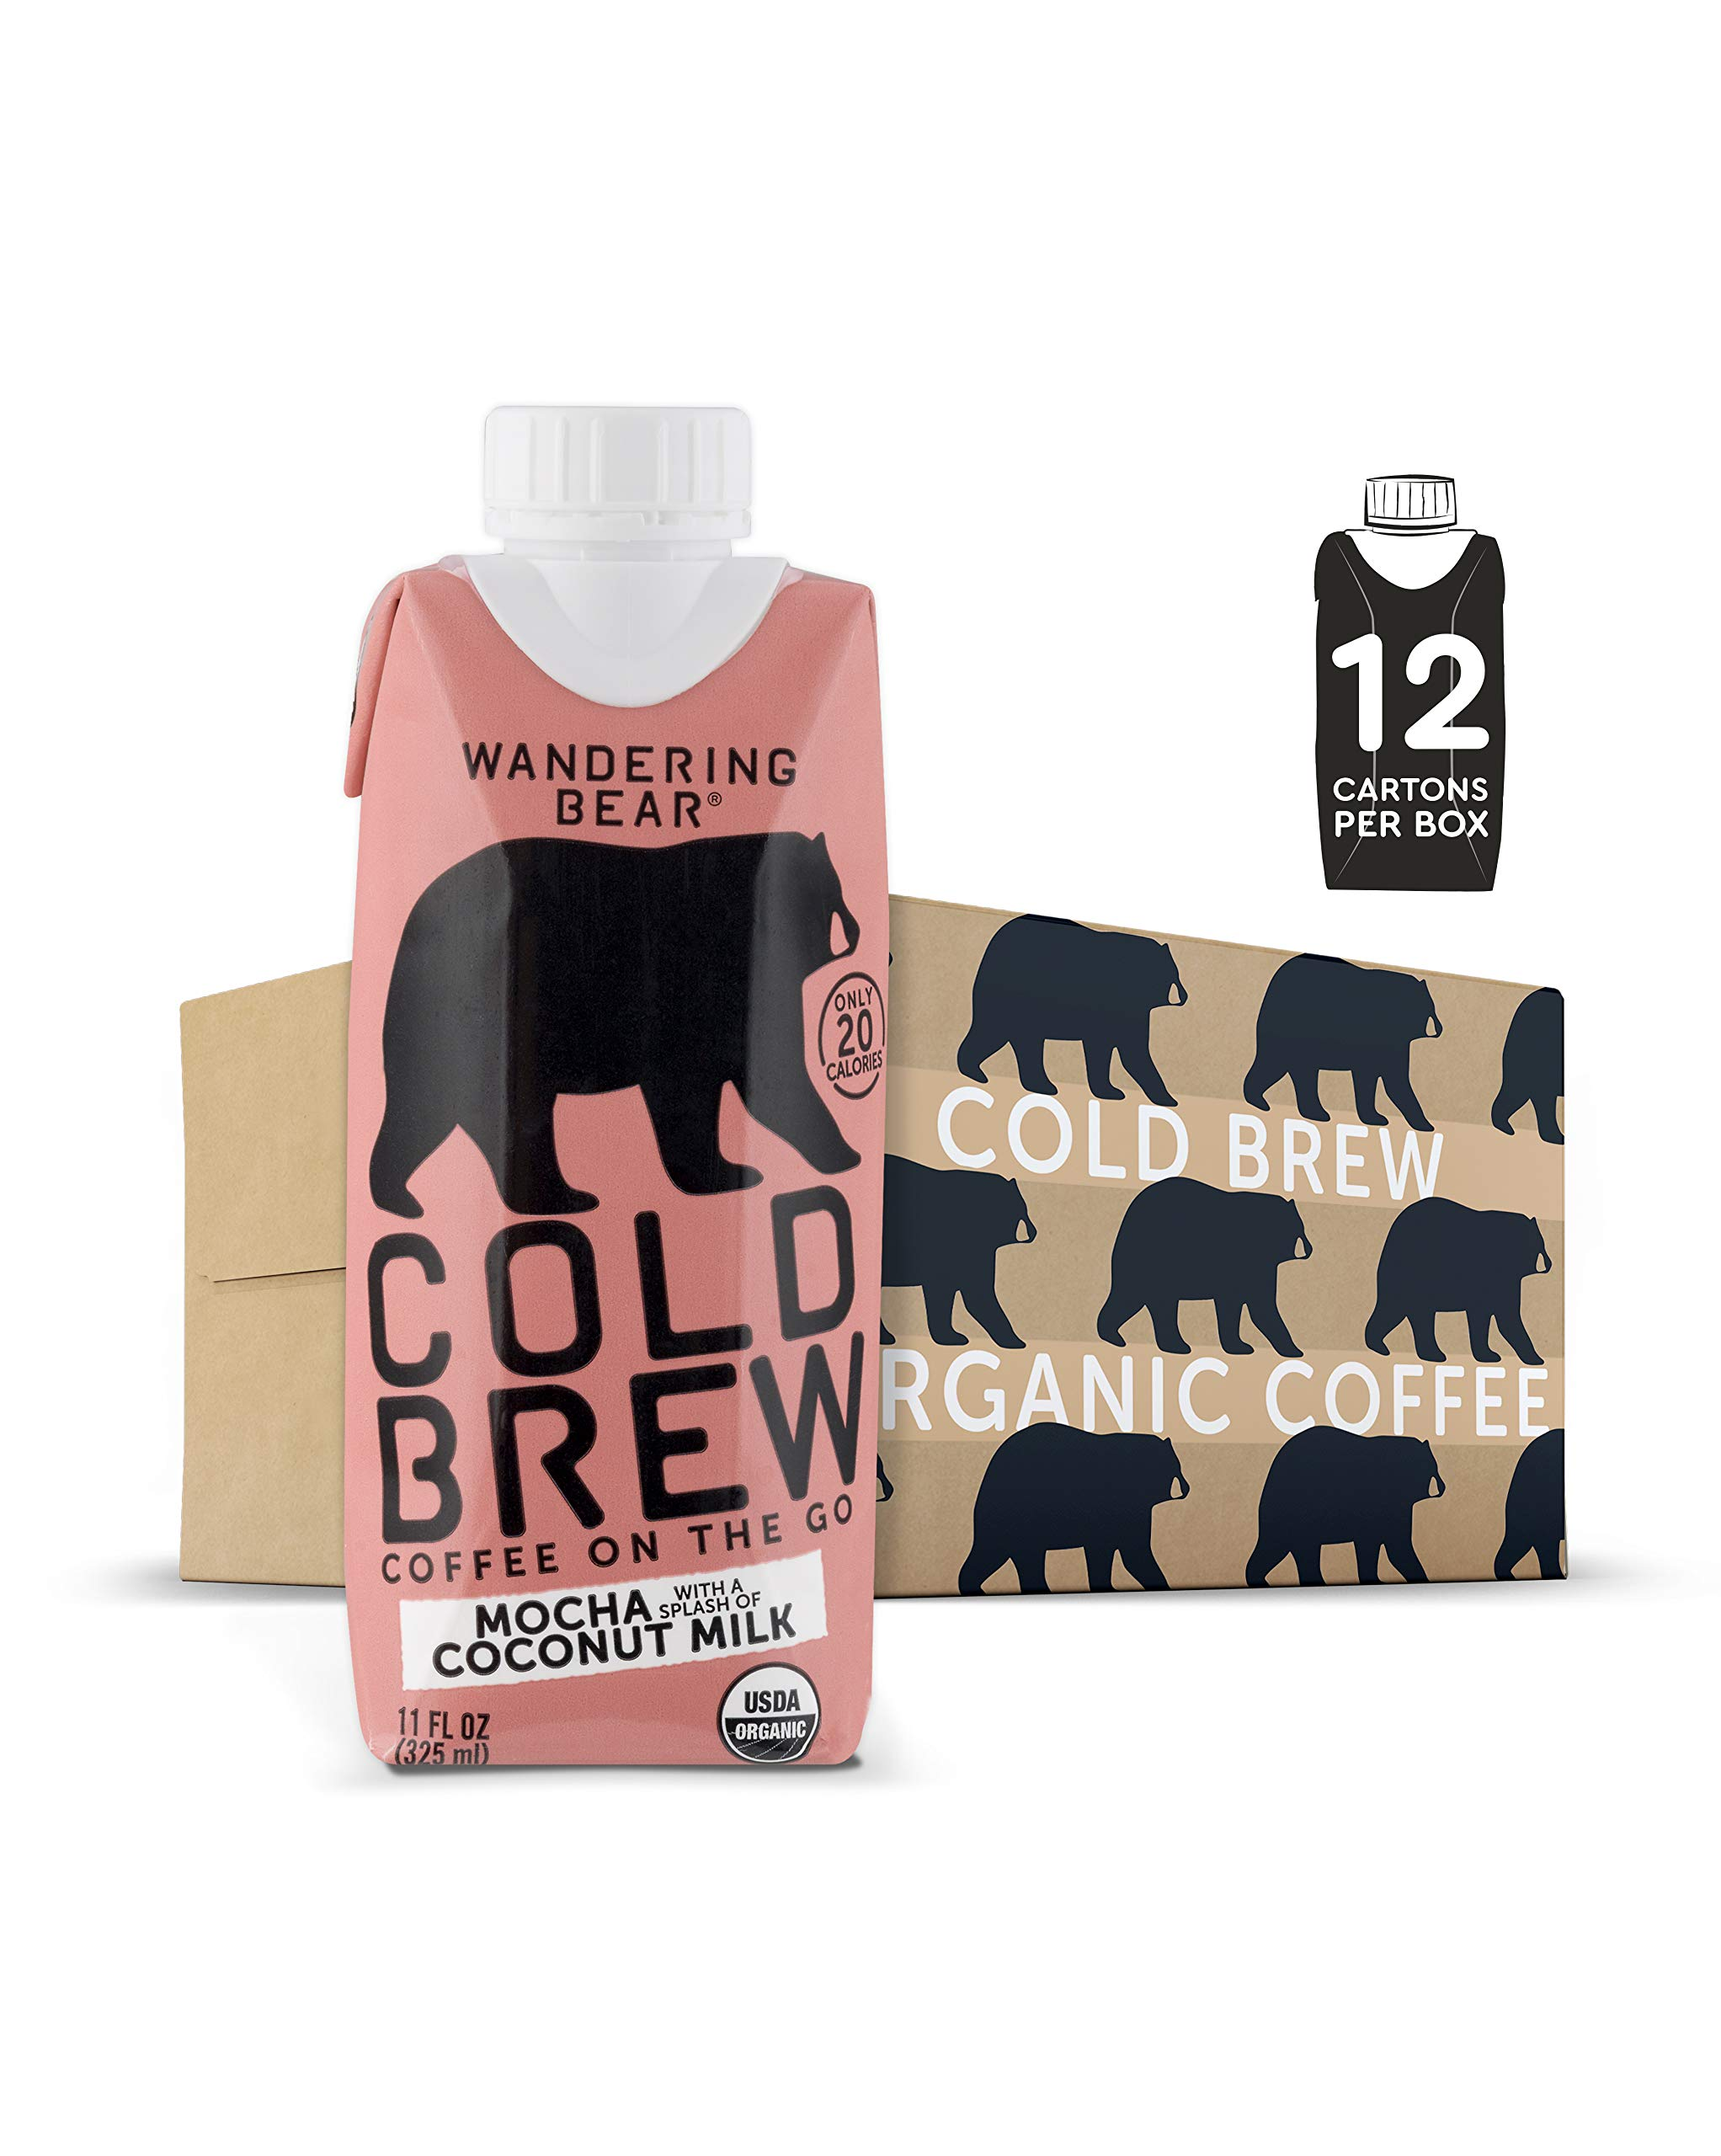 Wandering Bear Organic Cold Brew Coffee On-the-Go 11 oz Carton, Mocha With Splash of Coconut Milk, No Sugar, Ready to Drink, Not a Concentrate (Pack of 12) by Wandering Bear (Image #1)